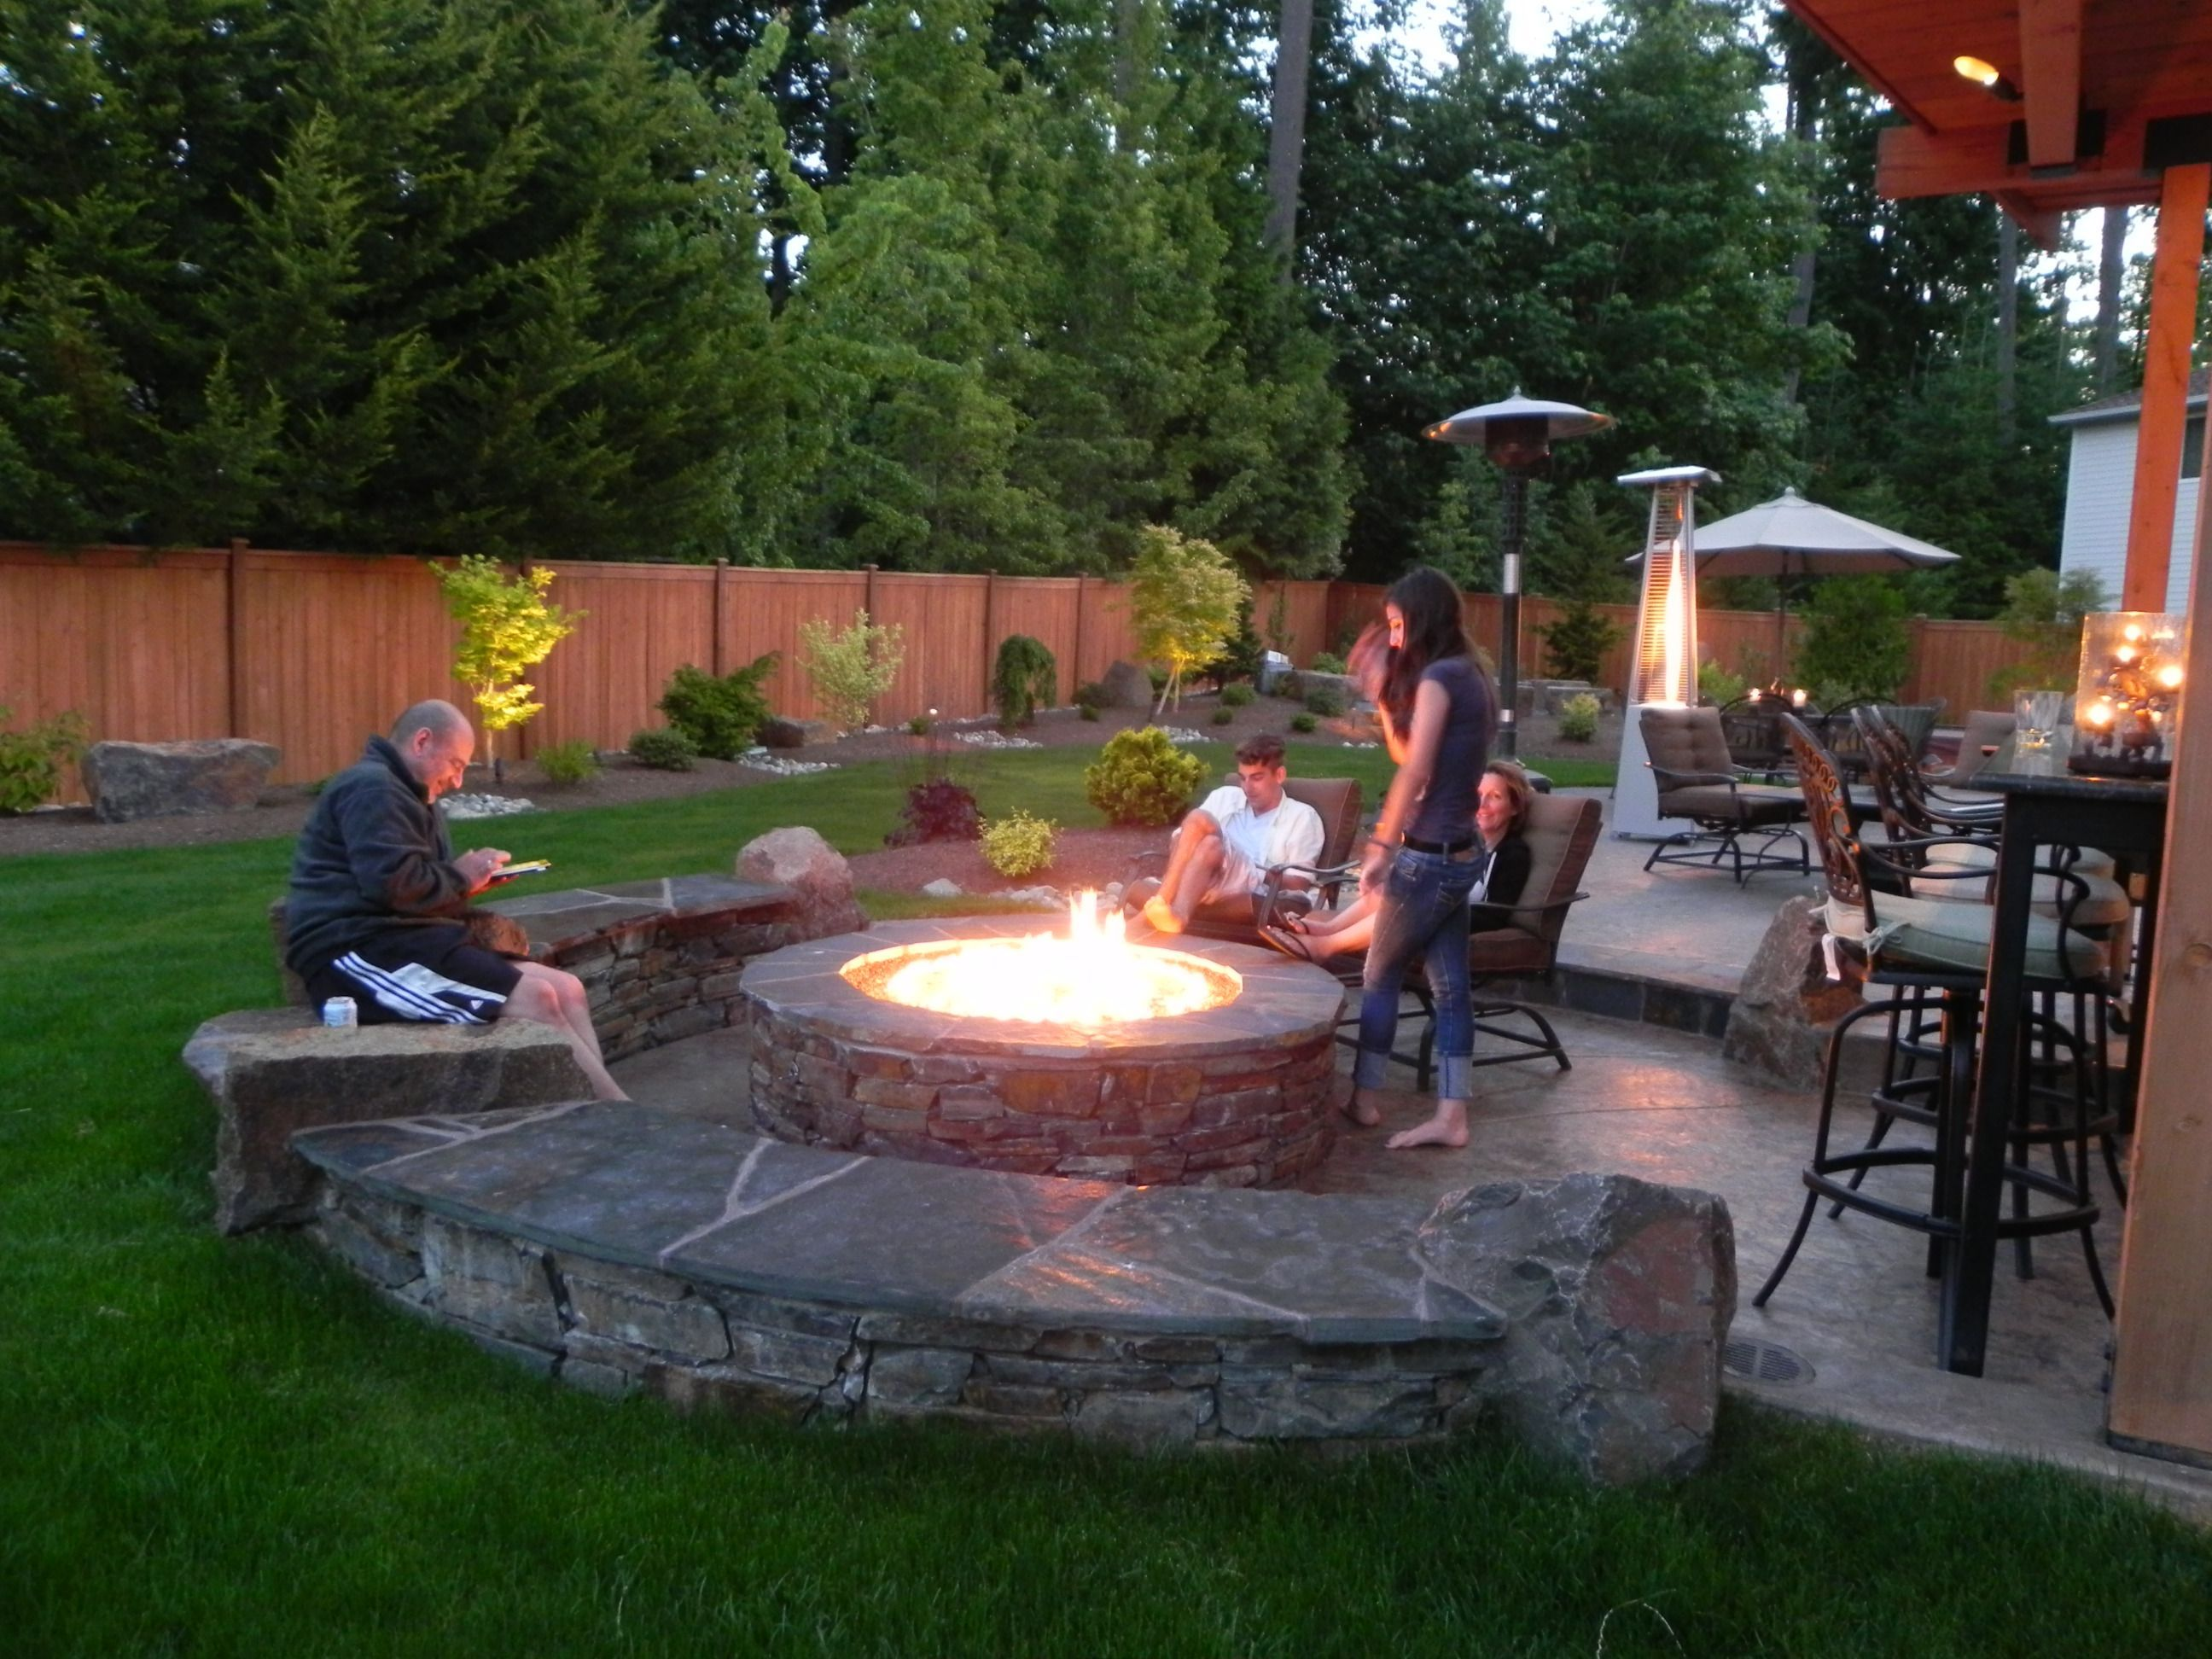 garden design with diy backyard landscaping and wood patio ideas fire pit homedreamworks pw courtyard gardens - Patio Design Ideas With Fire Pits